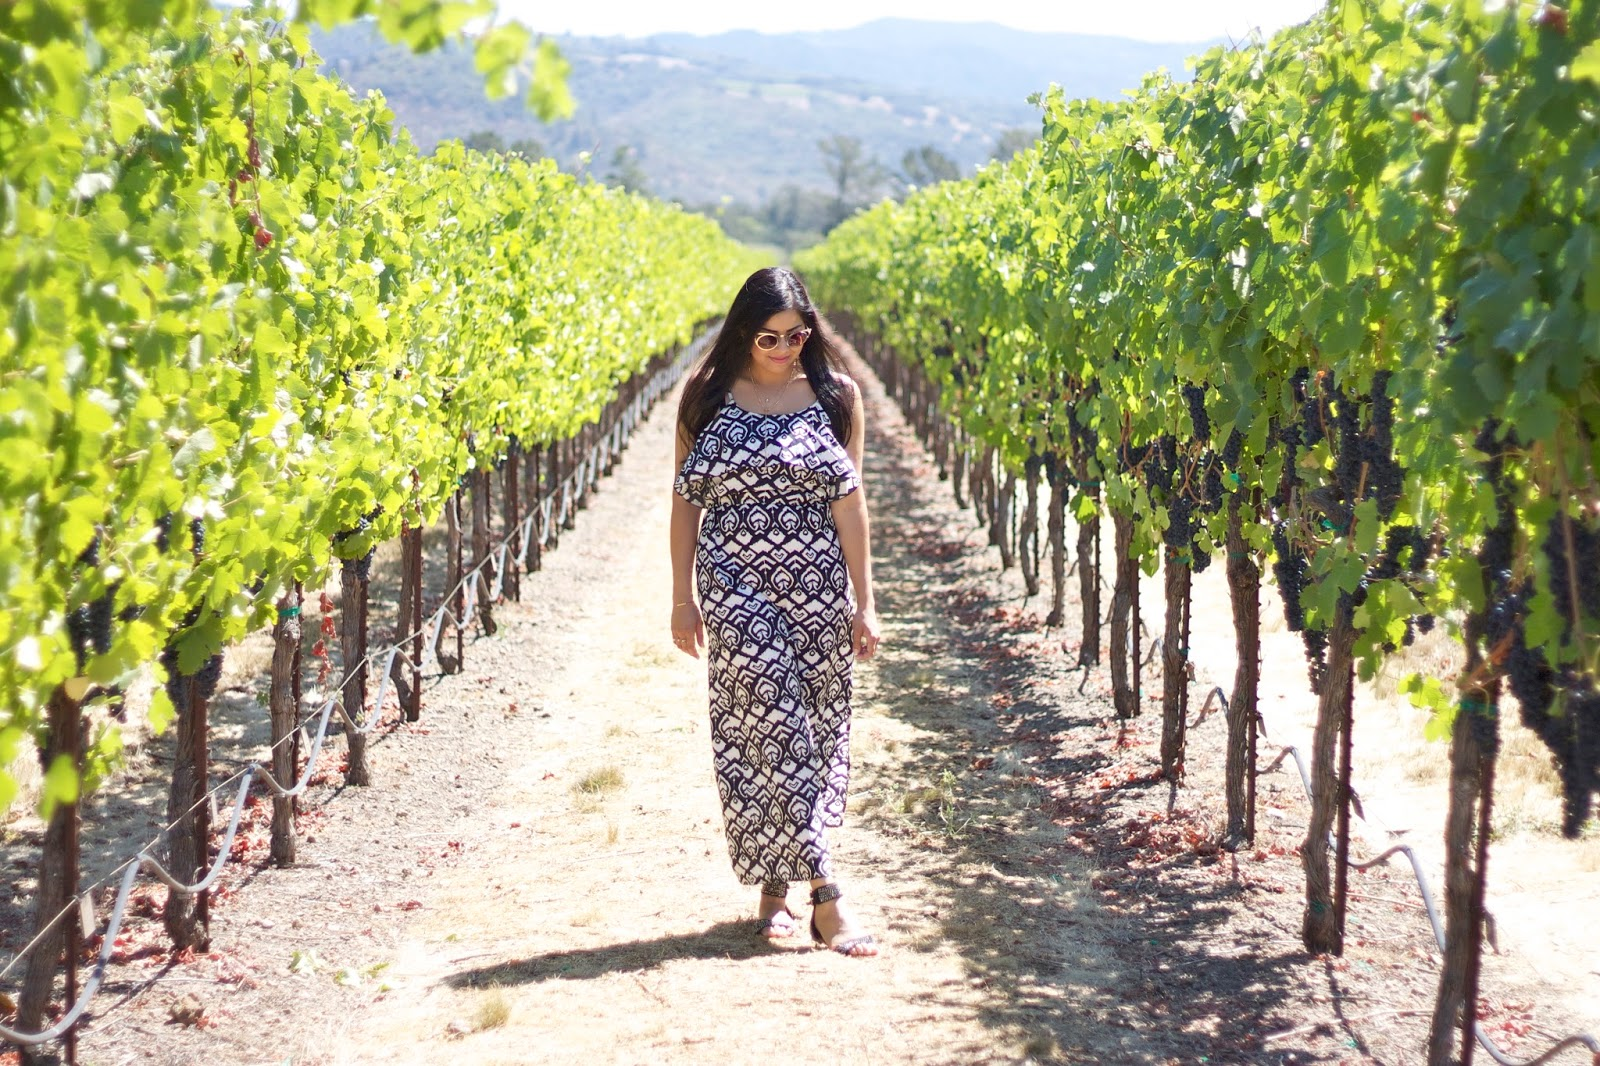 sonoma county wine tasting, sonoma ootd, stylish wine tasting outfit, summer comfy outfit